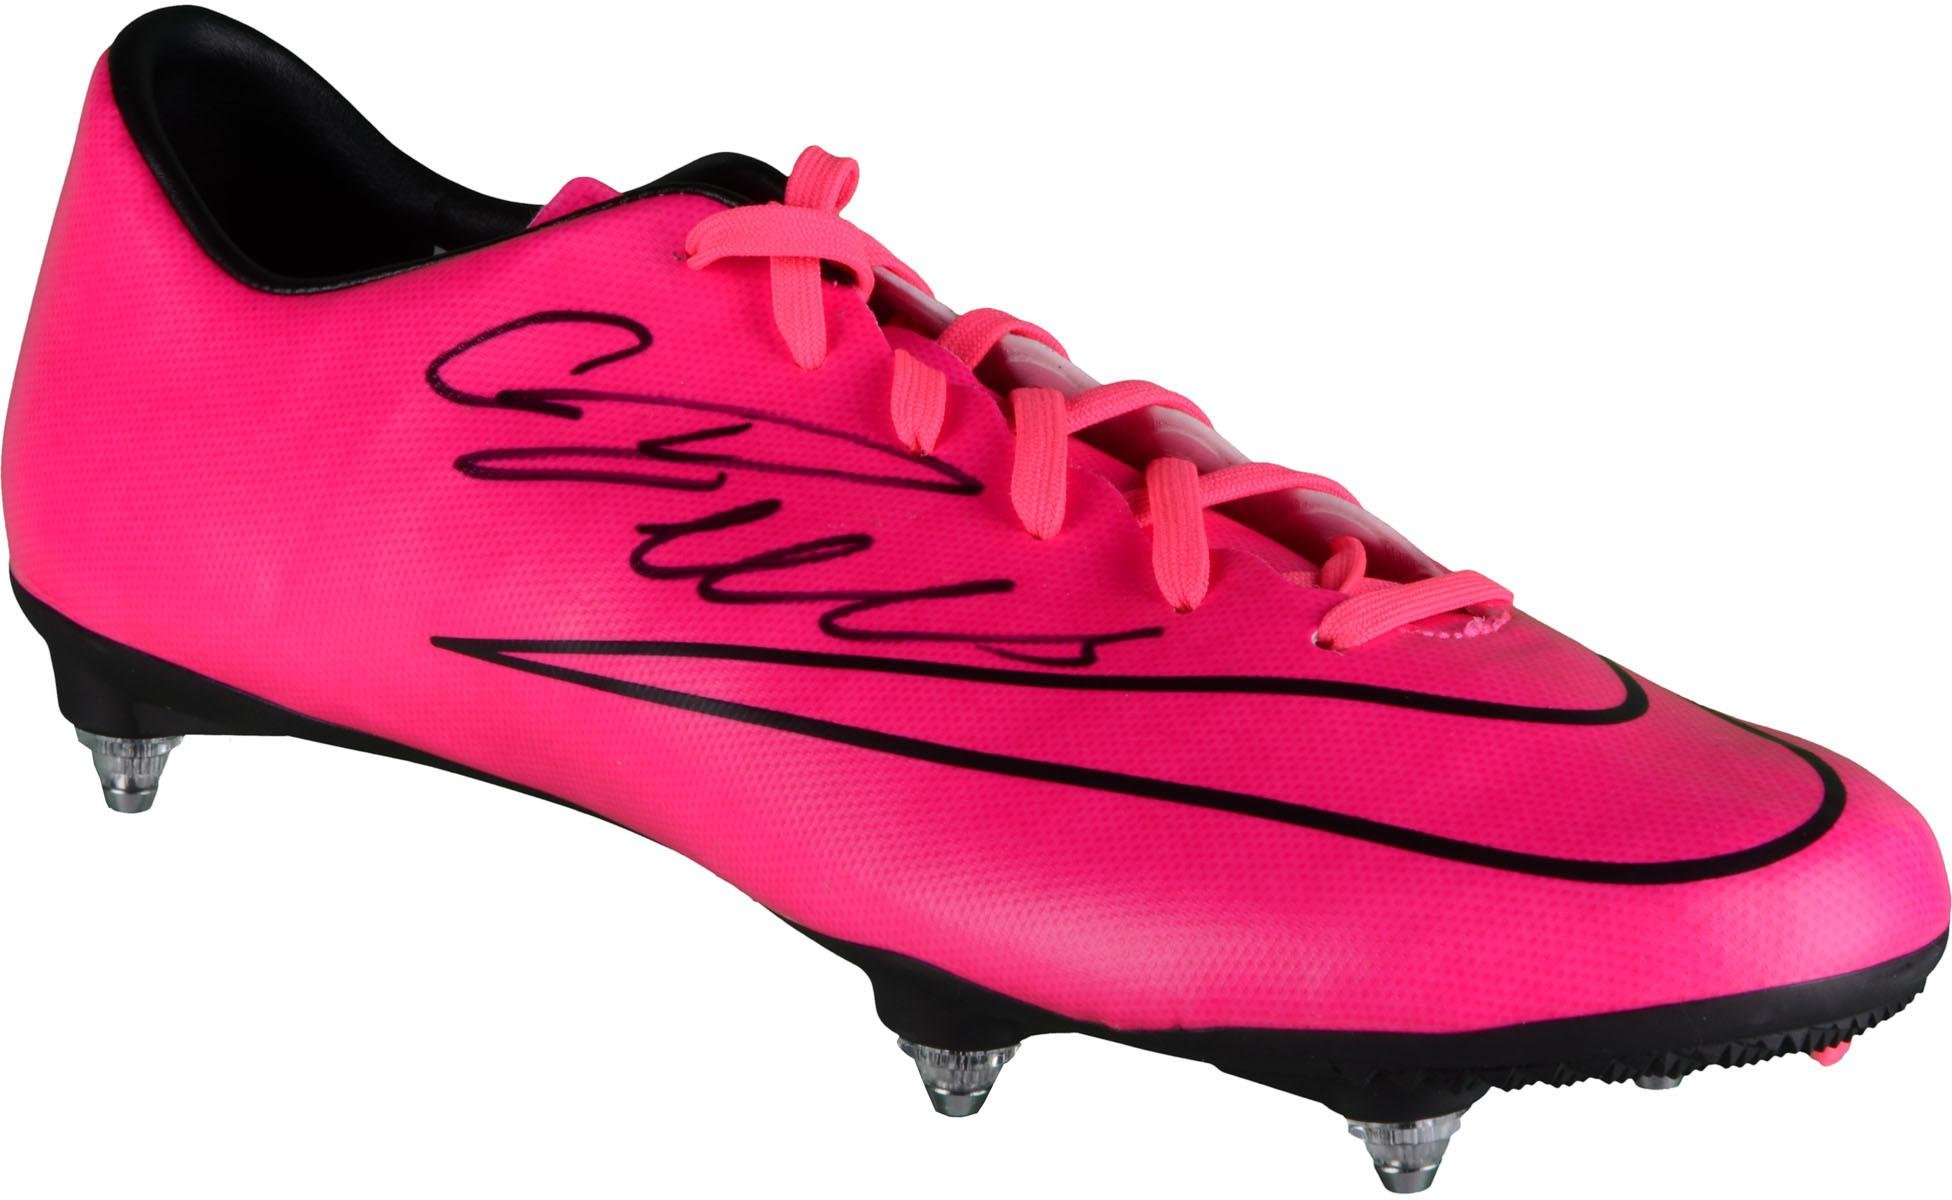 100% authentic cab2c 6cee7 Get Quotations · Cristiano Ronaldo Real Madrid Autographed Pink Nike Cleat  - Fanatics Authentic Certified - Autographed Soccer Cleats